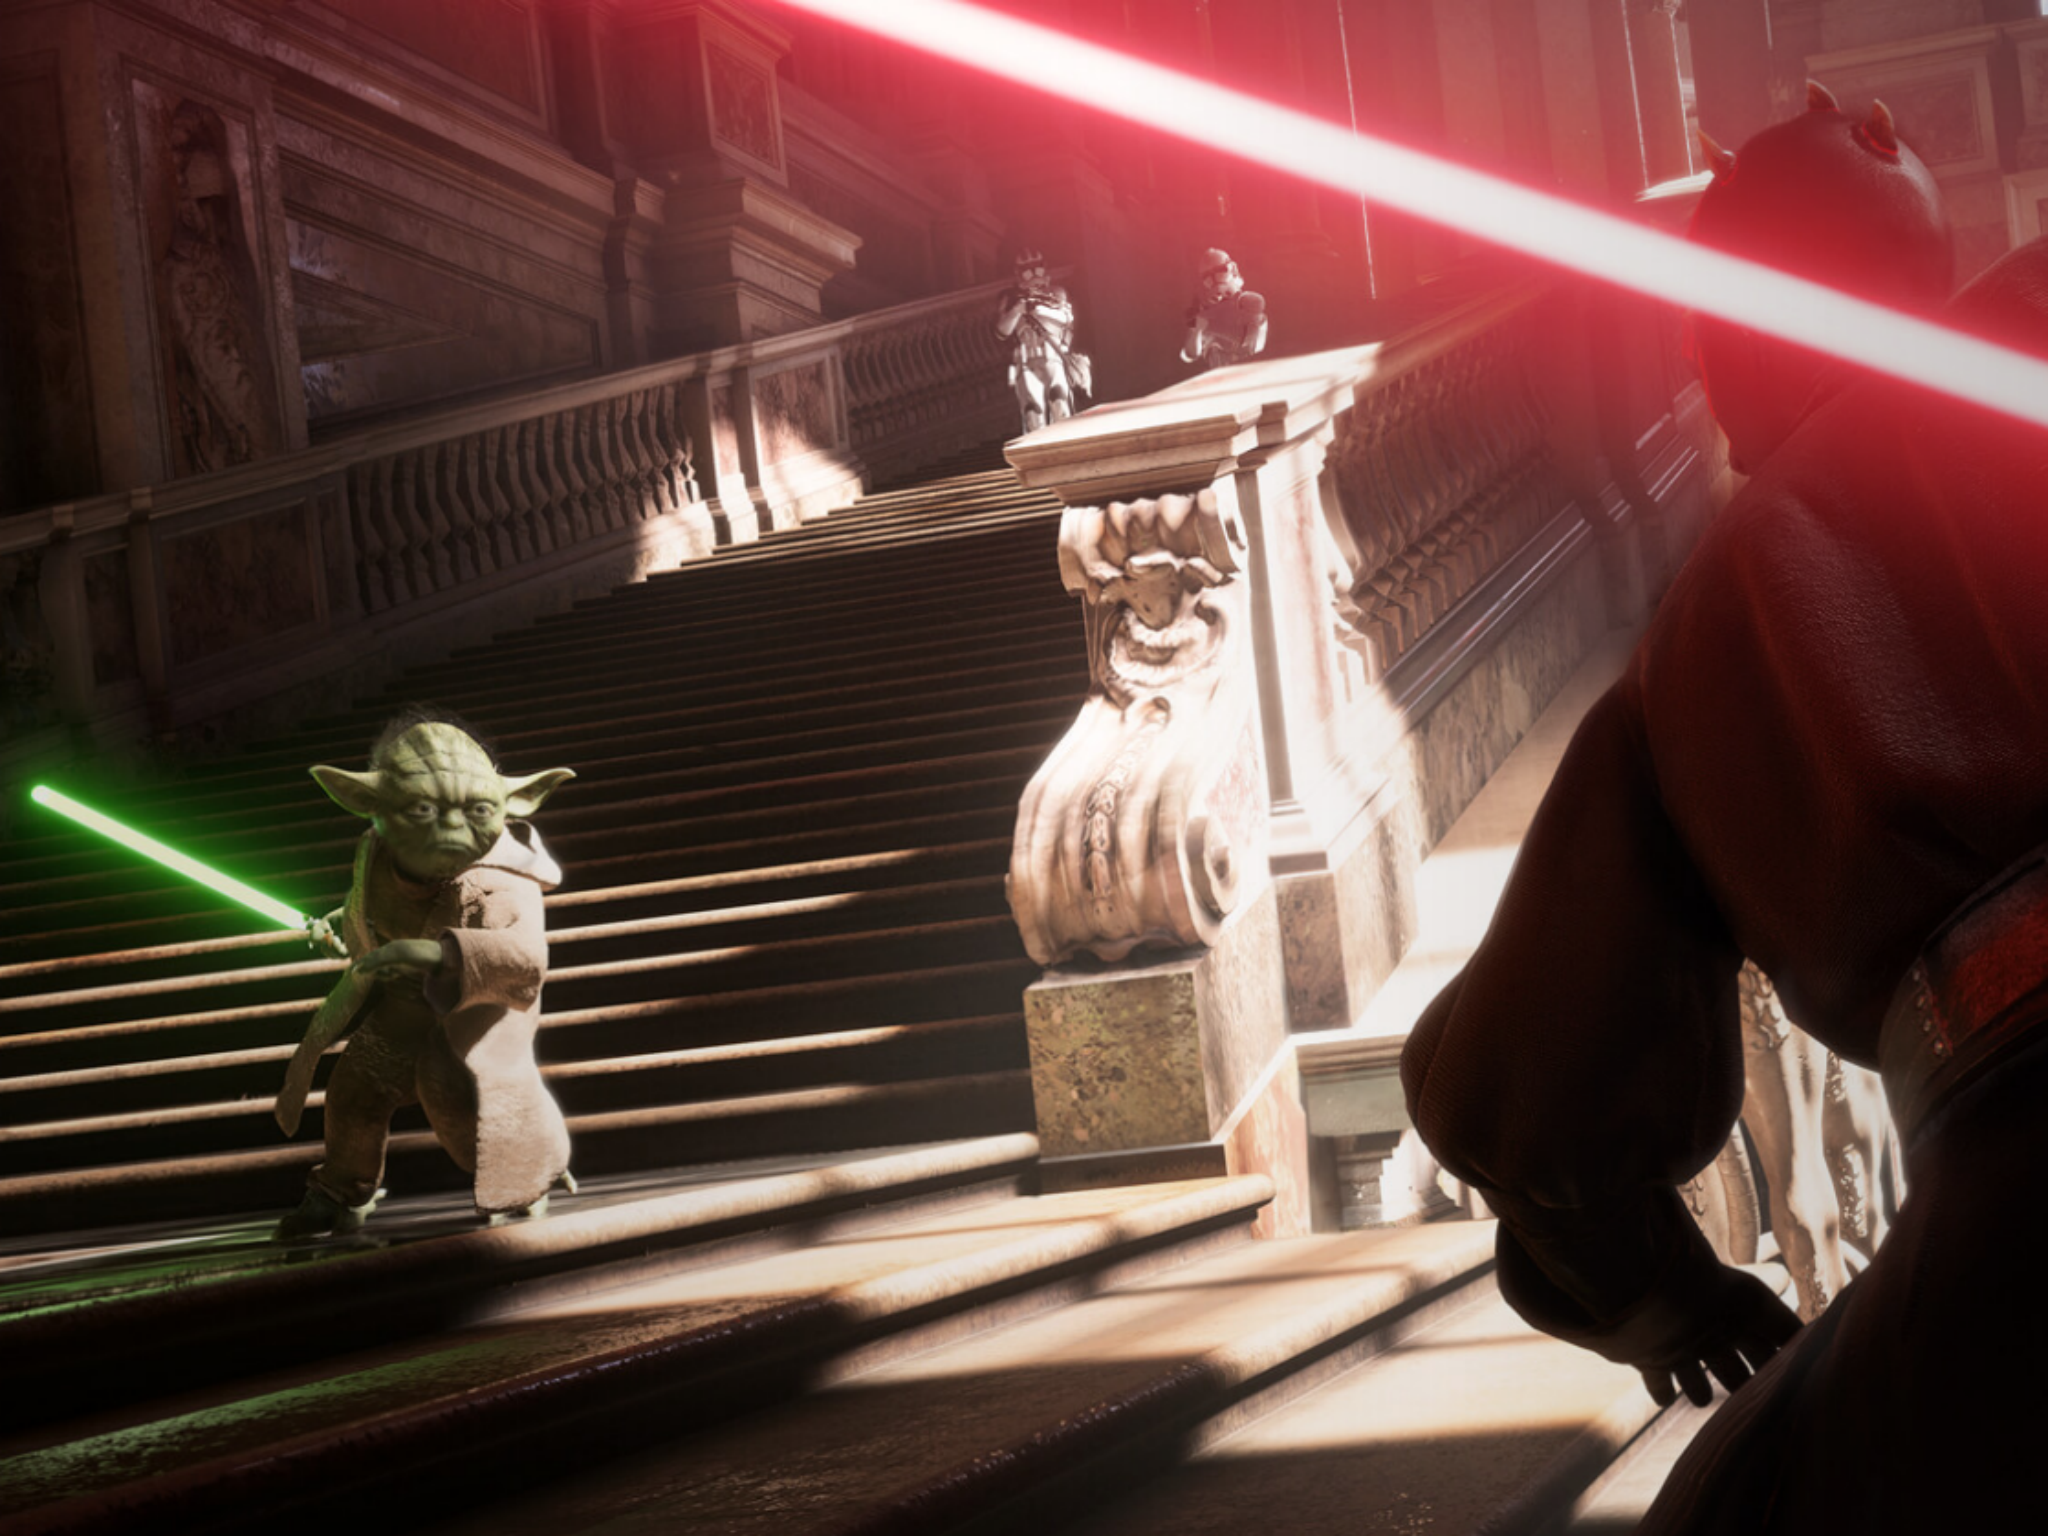 Star Wars Battlefront 2 beta now available to play on PS4, Xbox One and PC - here's how | The ...